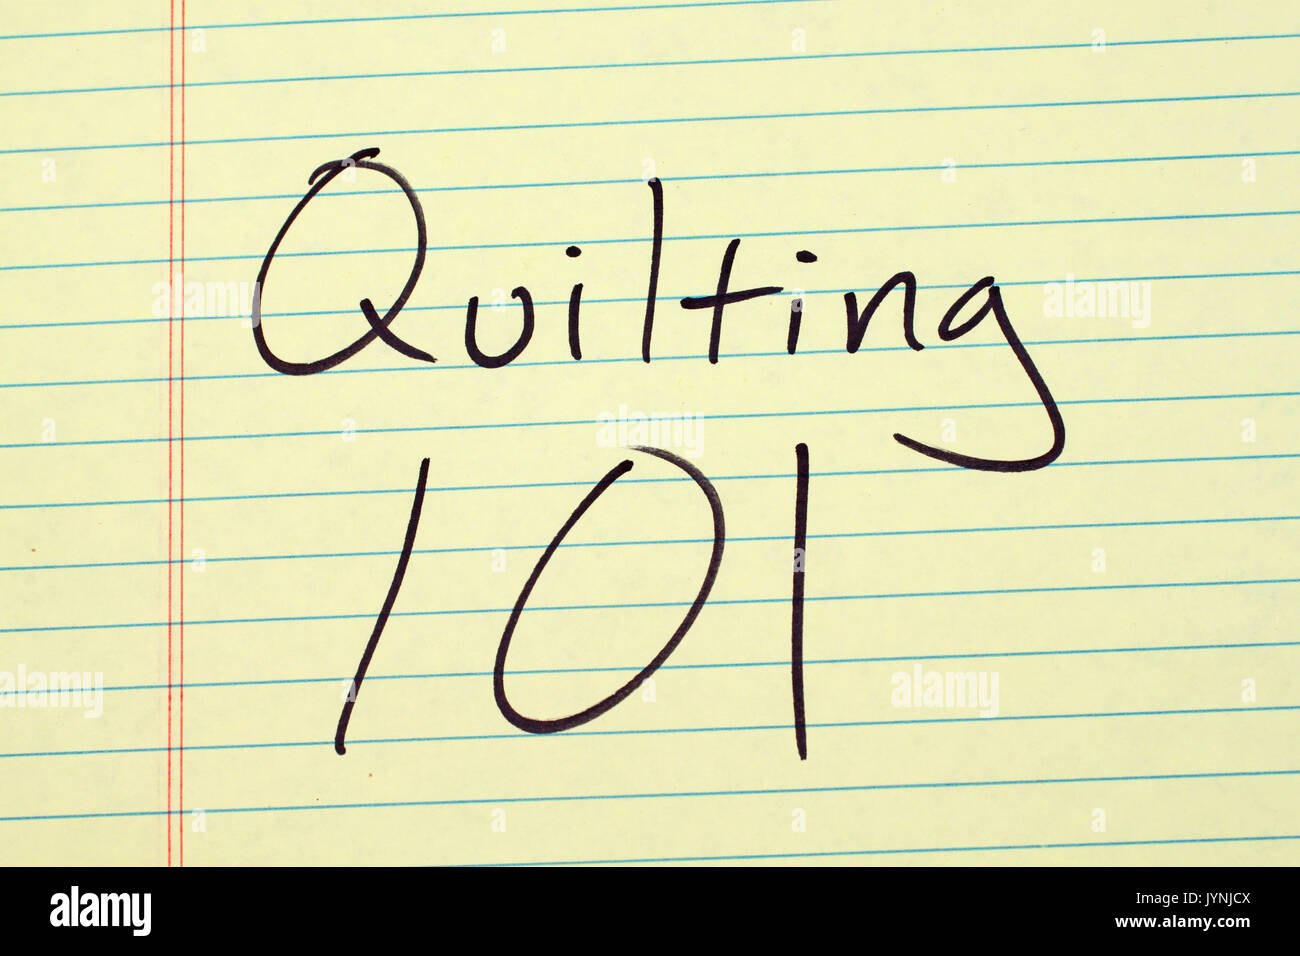 The words 'Quilting 101' on a yellow legal pad - Stock Image